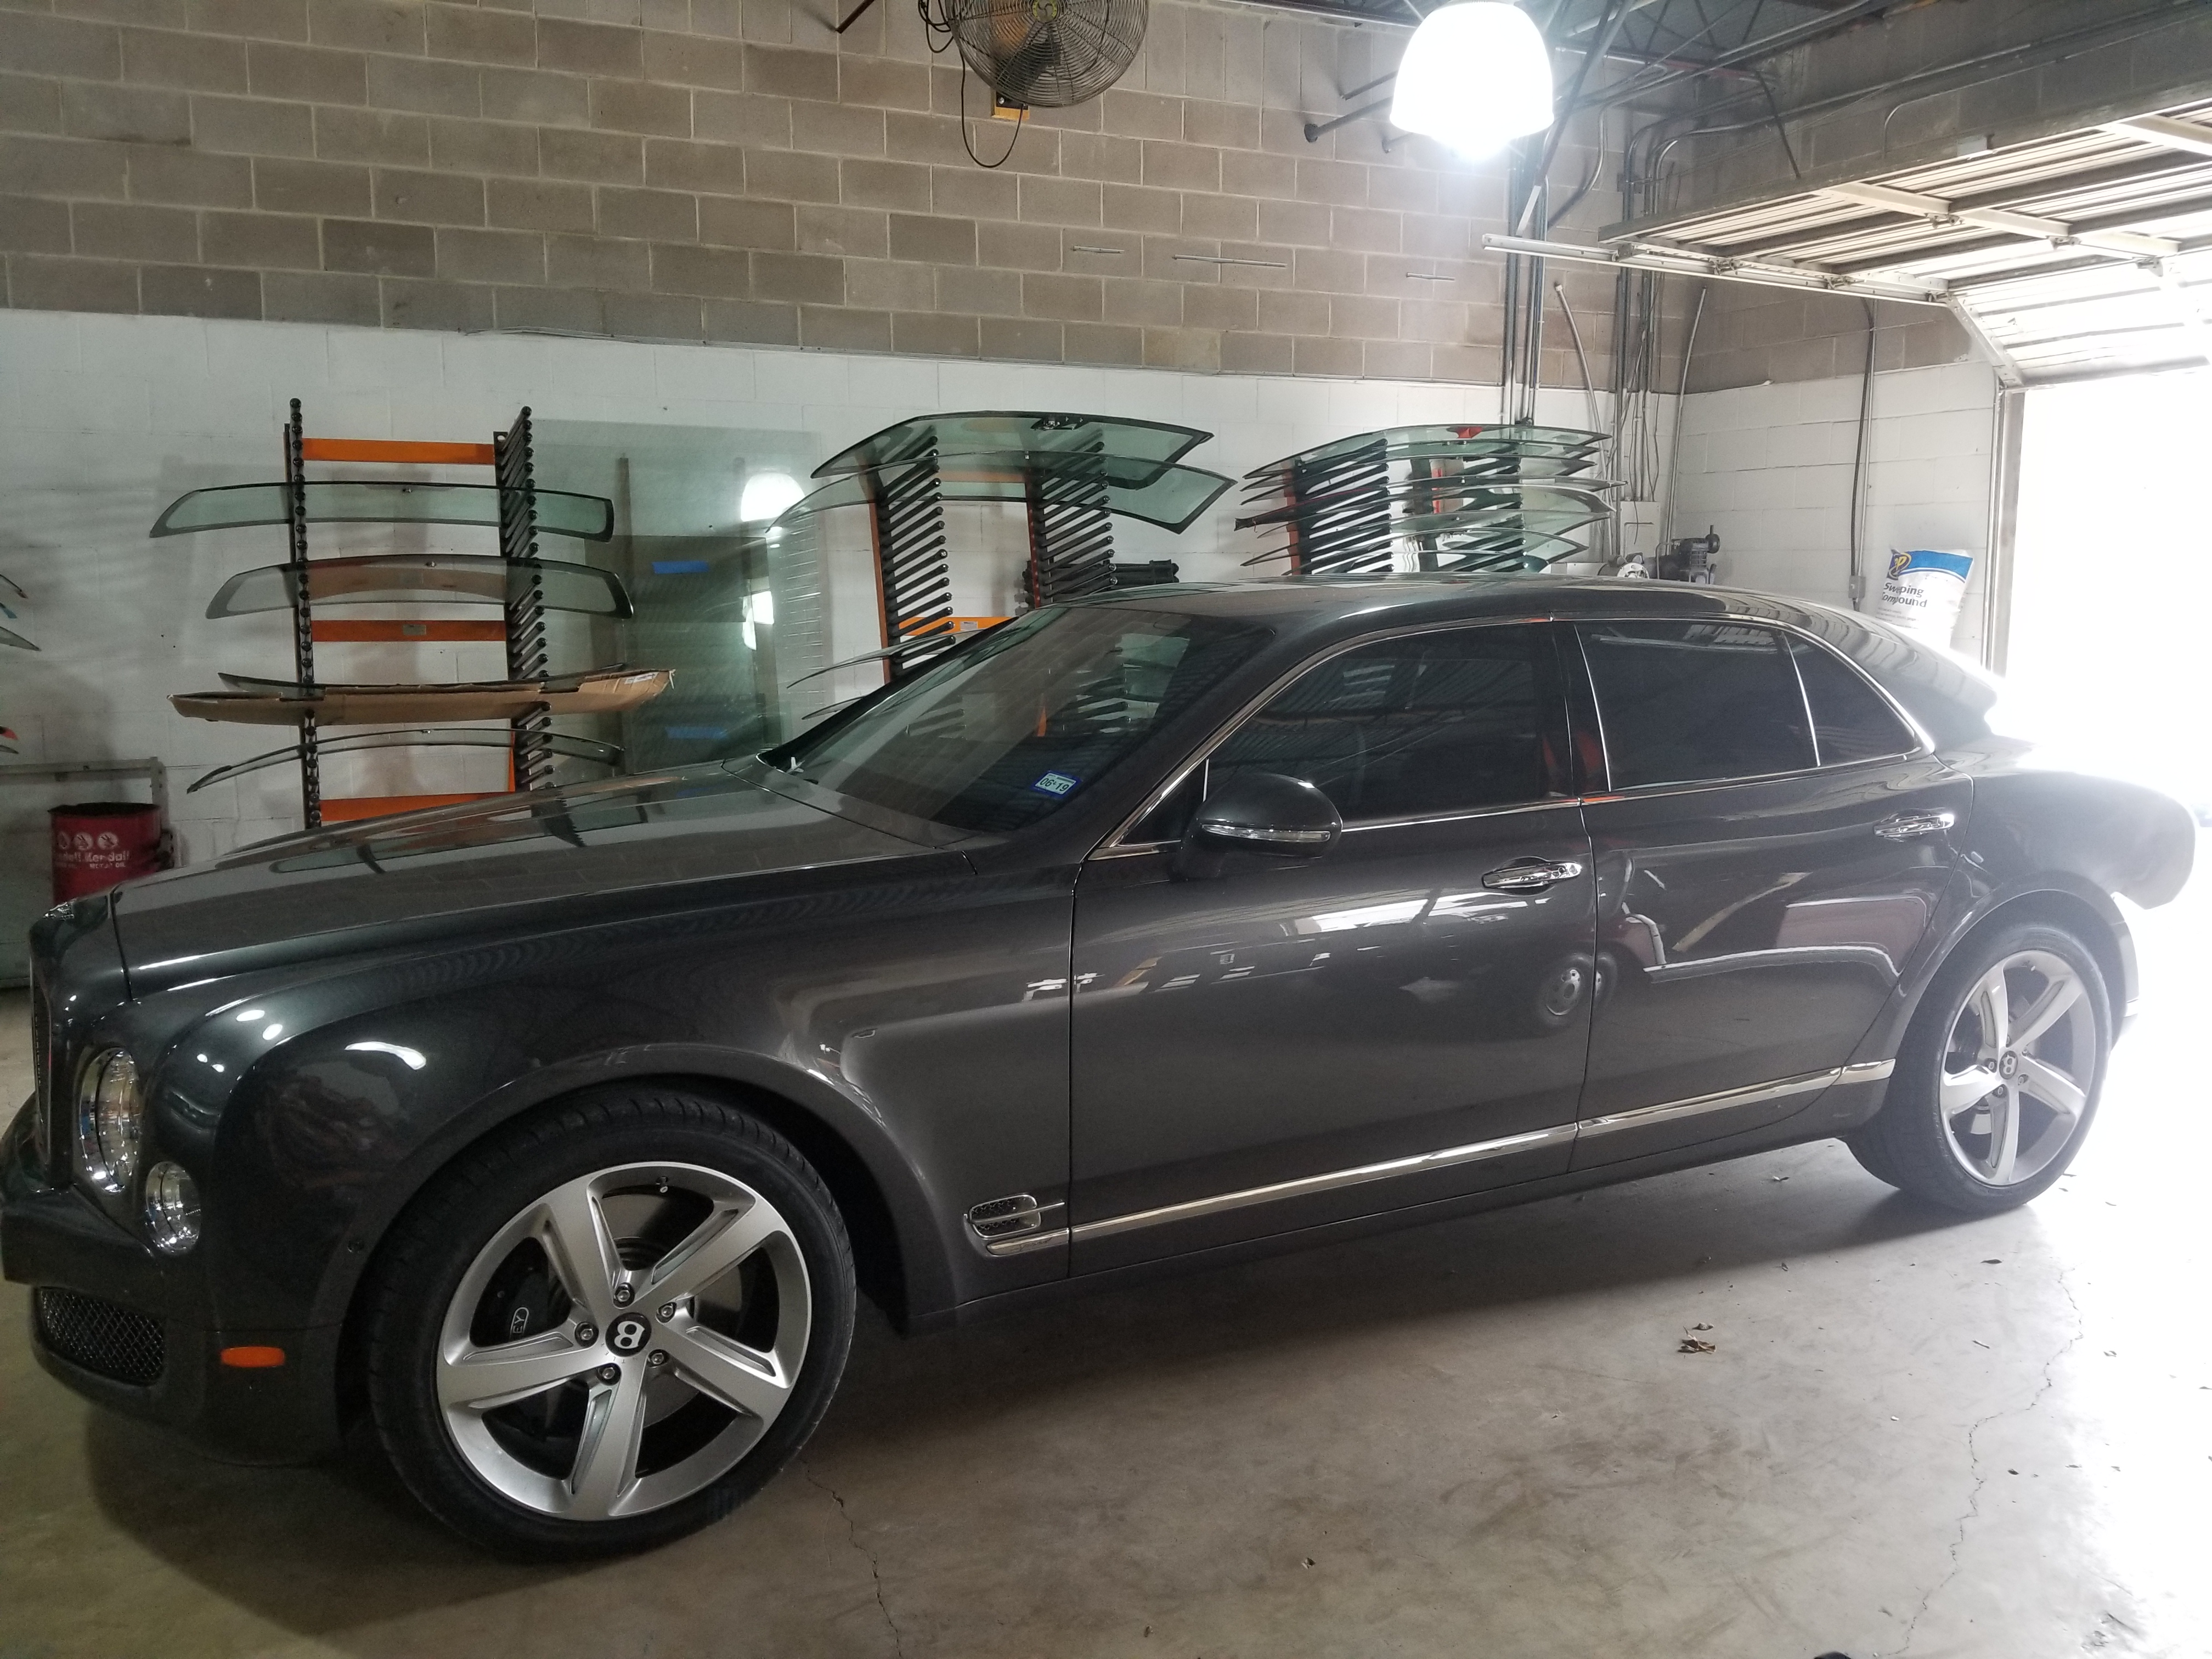 San Antonio Auto Glass Repair Luxury Car Bentley Stone Oak Alamo Heights